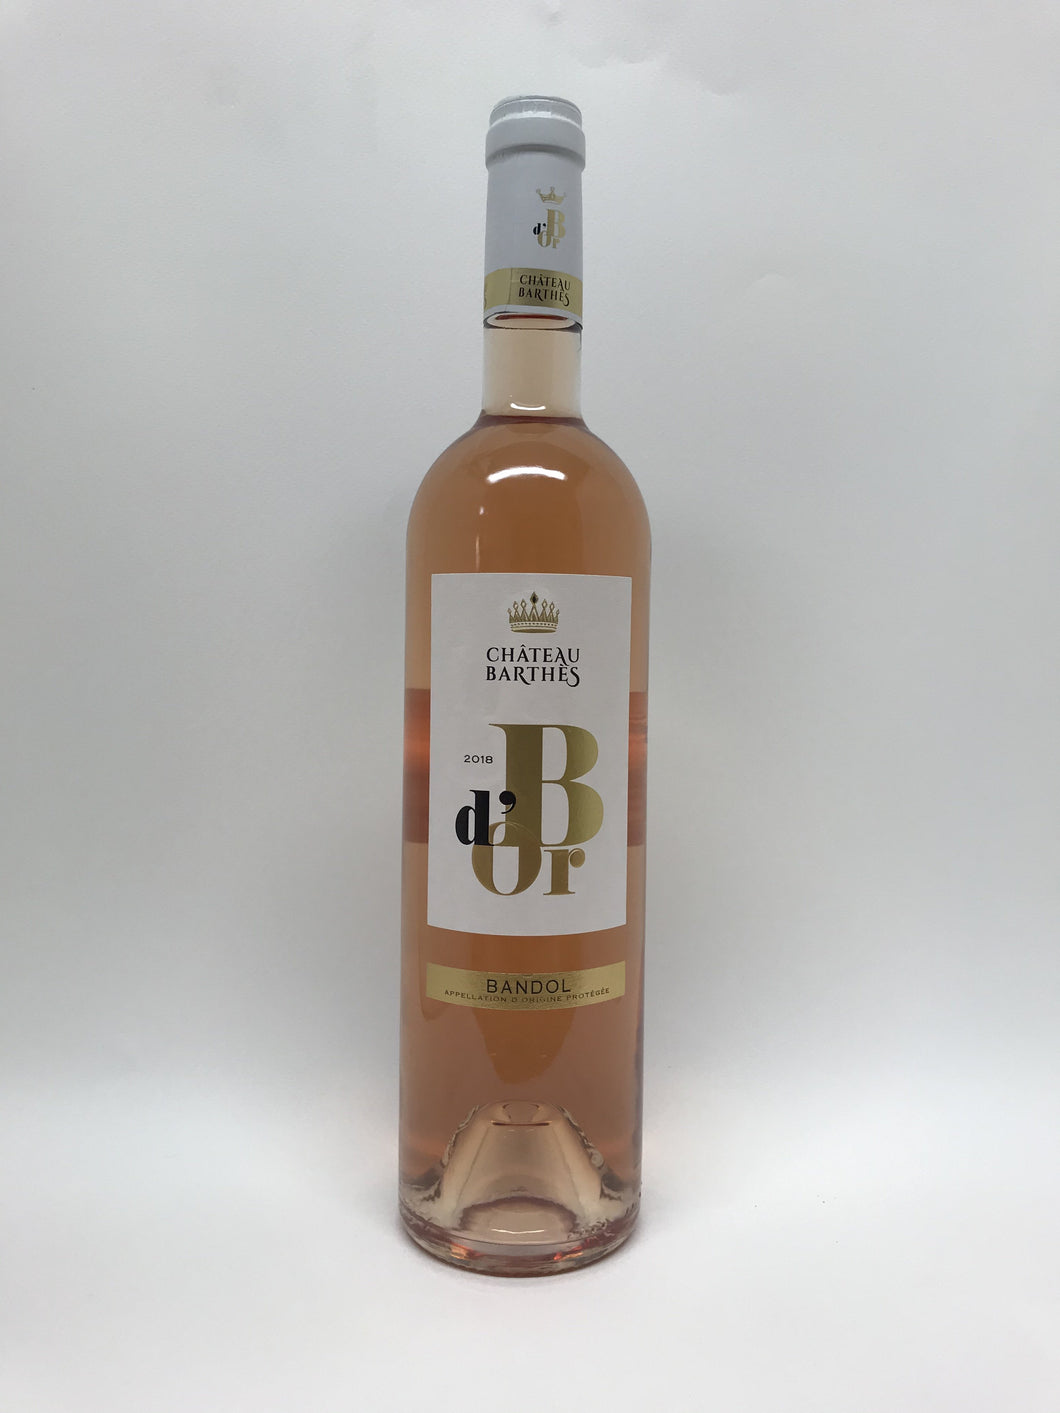 Chateau Barthes - Bandol B d'Or 18